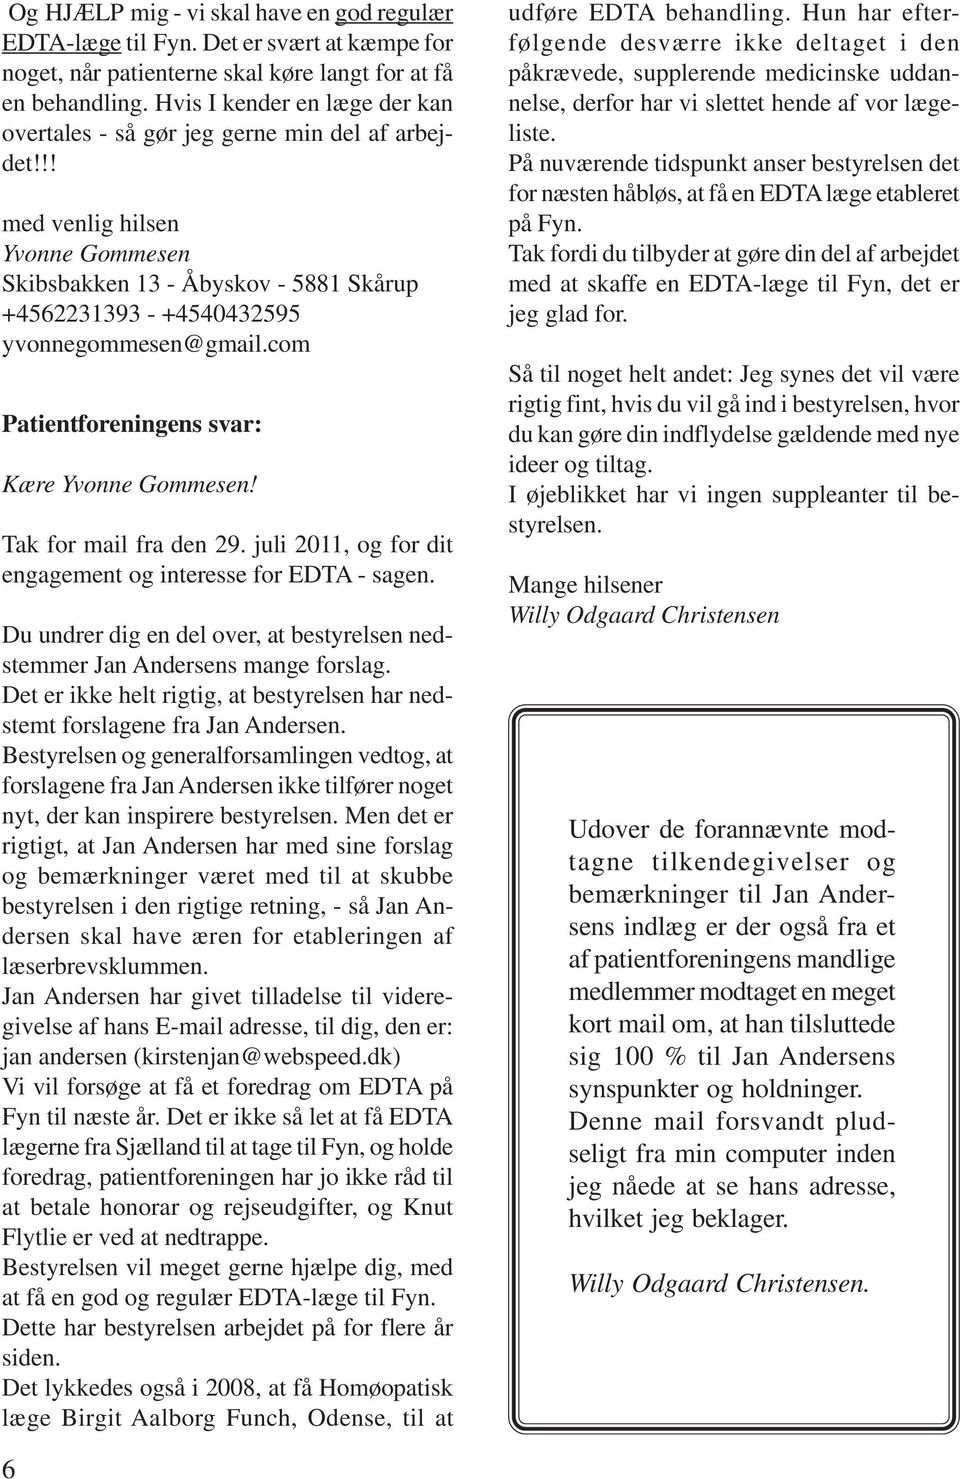 com Patientforeningens svar: Kære Yvonne Gommesen! Tak for mail fra den 29. juli 2011, og for dit engagement og interesse for EDTA - sagen.